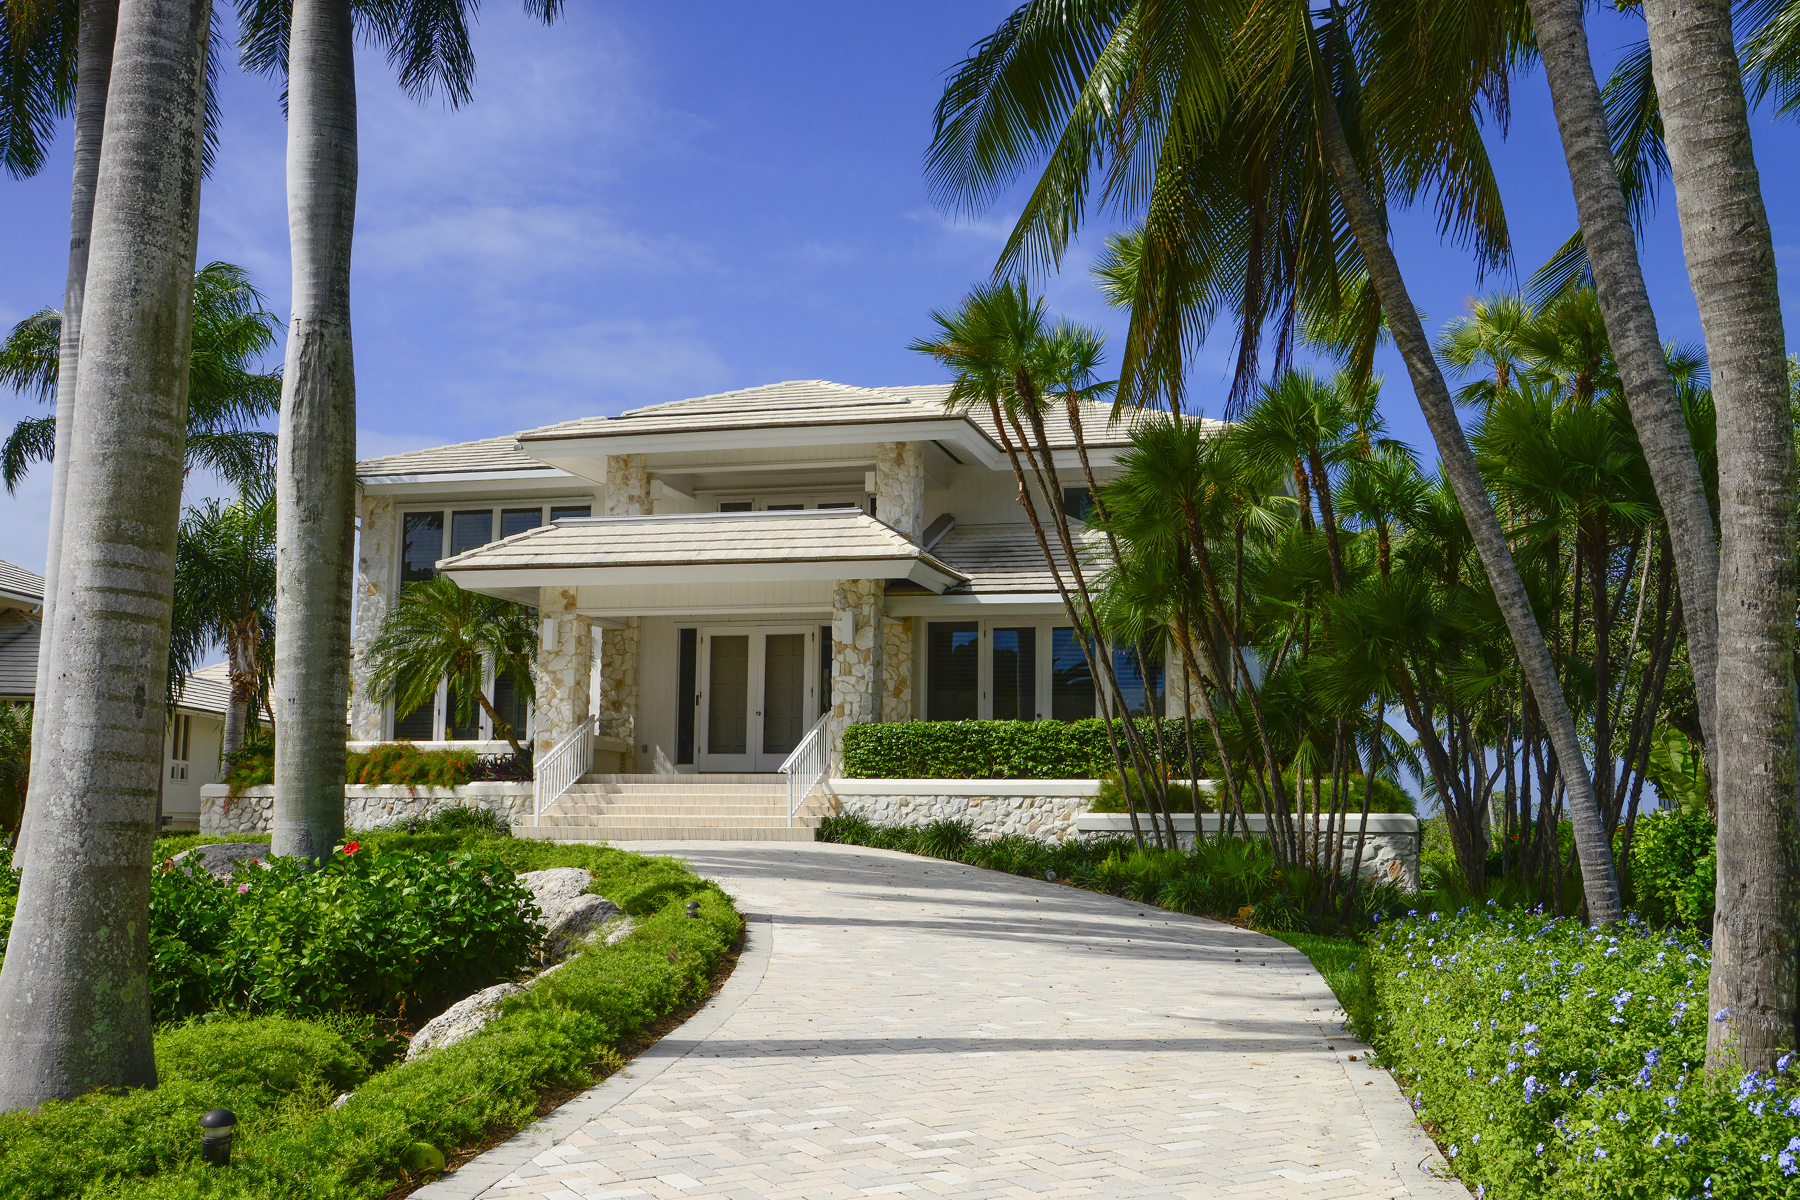 Casa Unifamiliar por un Venta en Prestigious Waterfront Living at Ocean Reef 13 Osprey Lane Ocean Reef Community, Key Largo, Florida, 33037 Estados Unidos